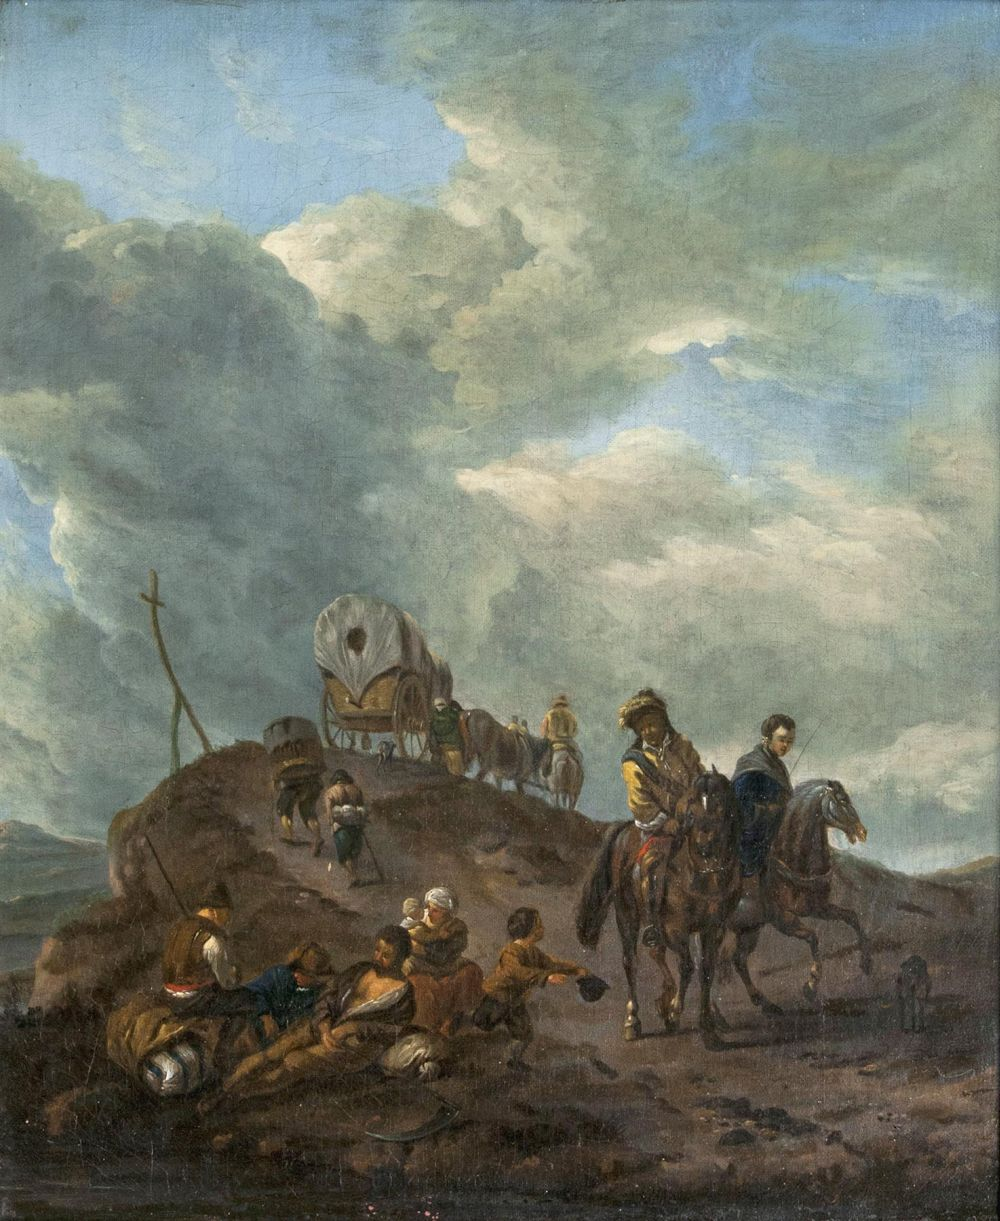 Carriage and Riders on a Mountain Top